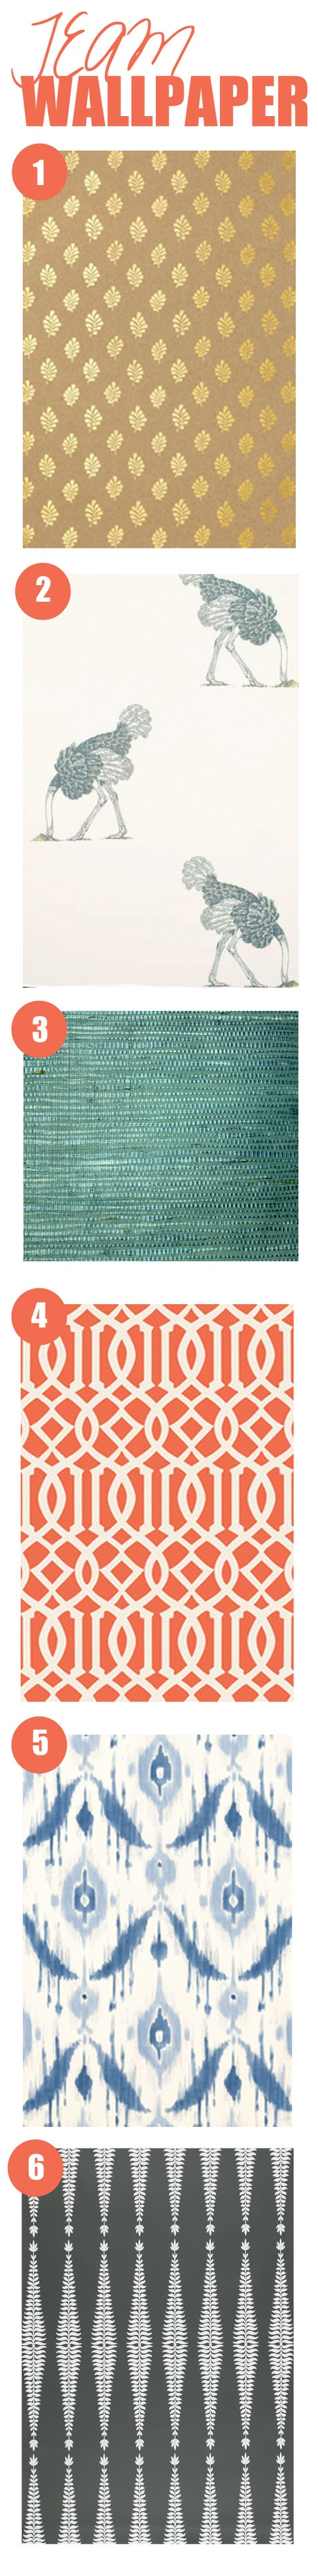 Team Wallpaper  Gold Leaf, Ostrich, Blue Grasscloth, Orange Imperial Trellis, Blue Ikat, Charcoal Ferns